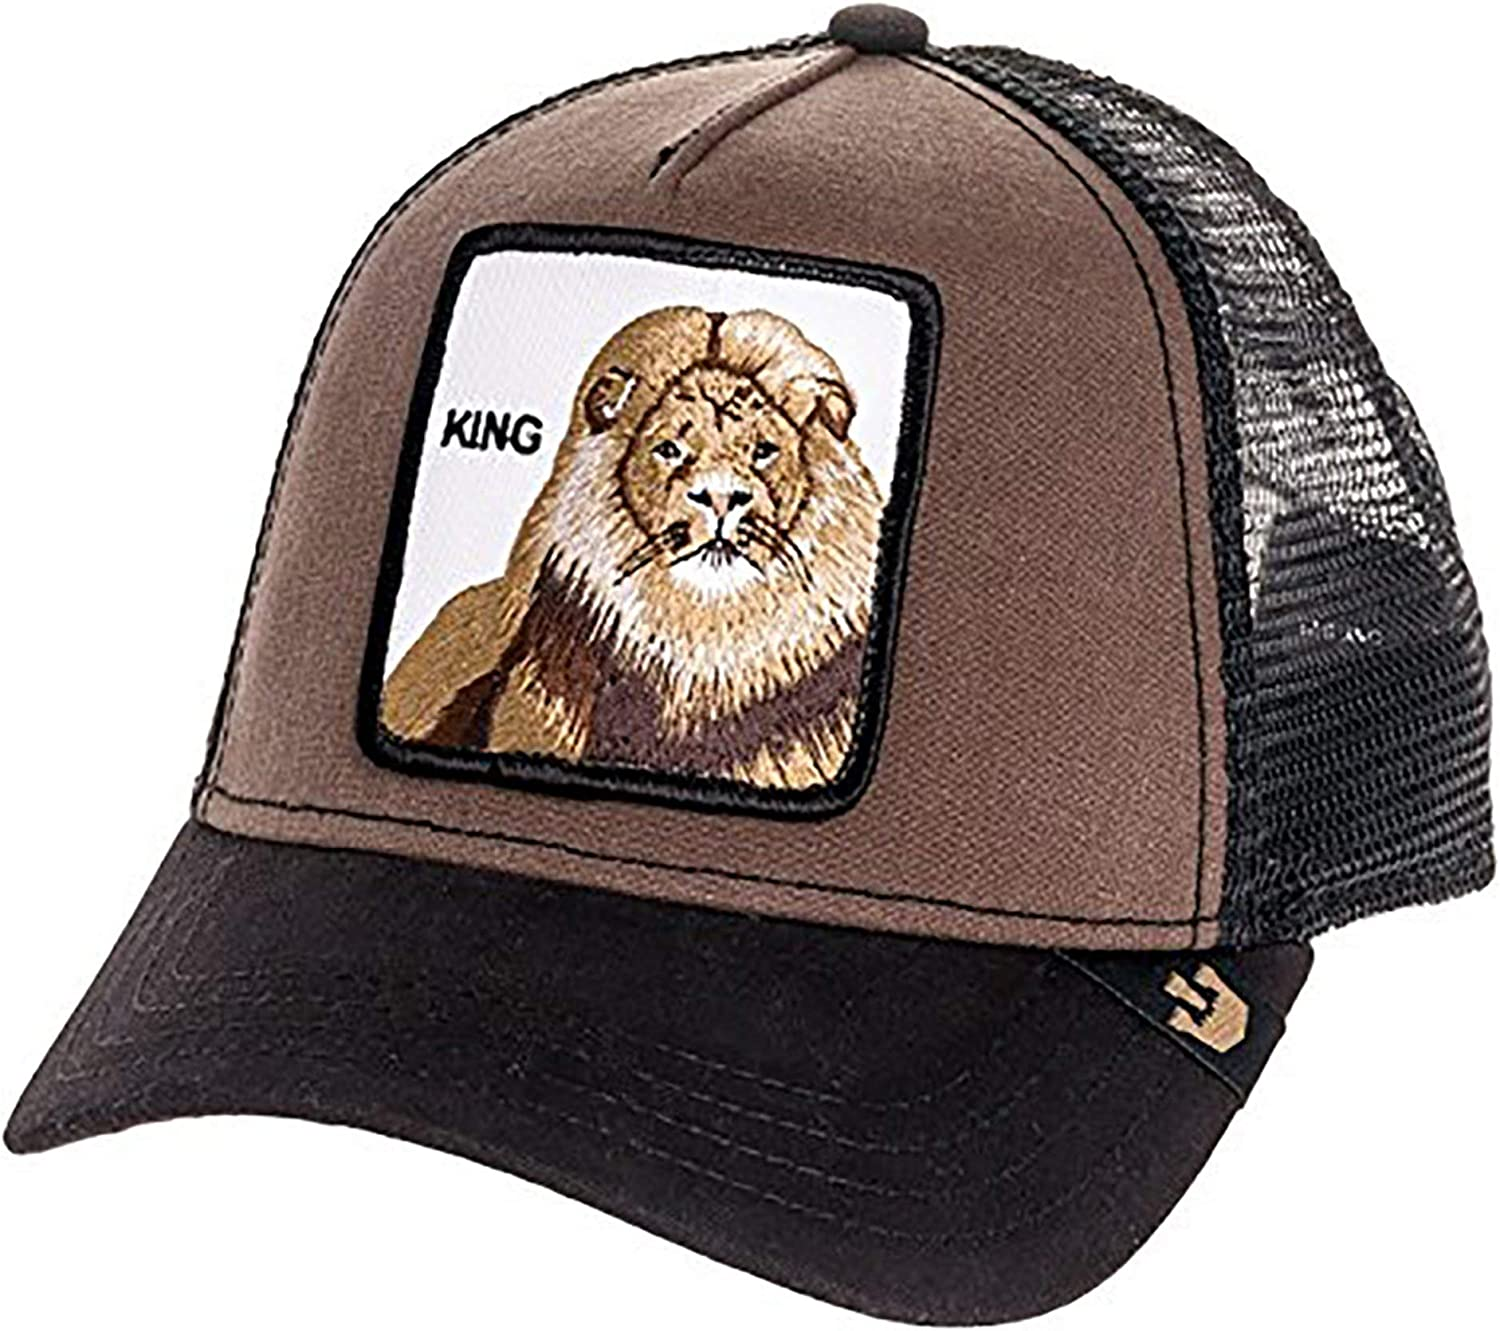 Goorin Bros. King Gorra Trucker marrón: Amazon.es: Ropa y accesorios